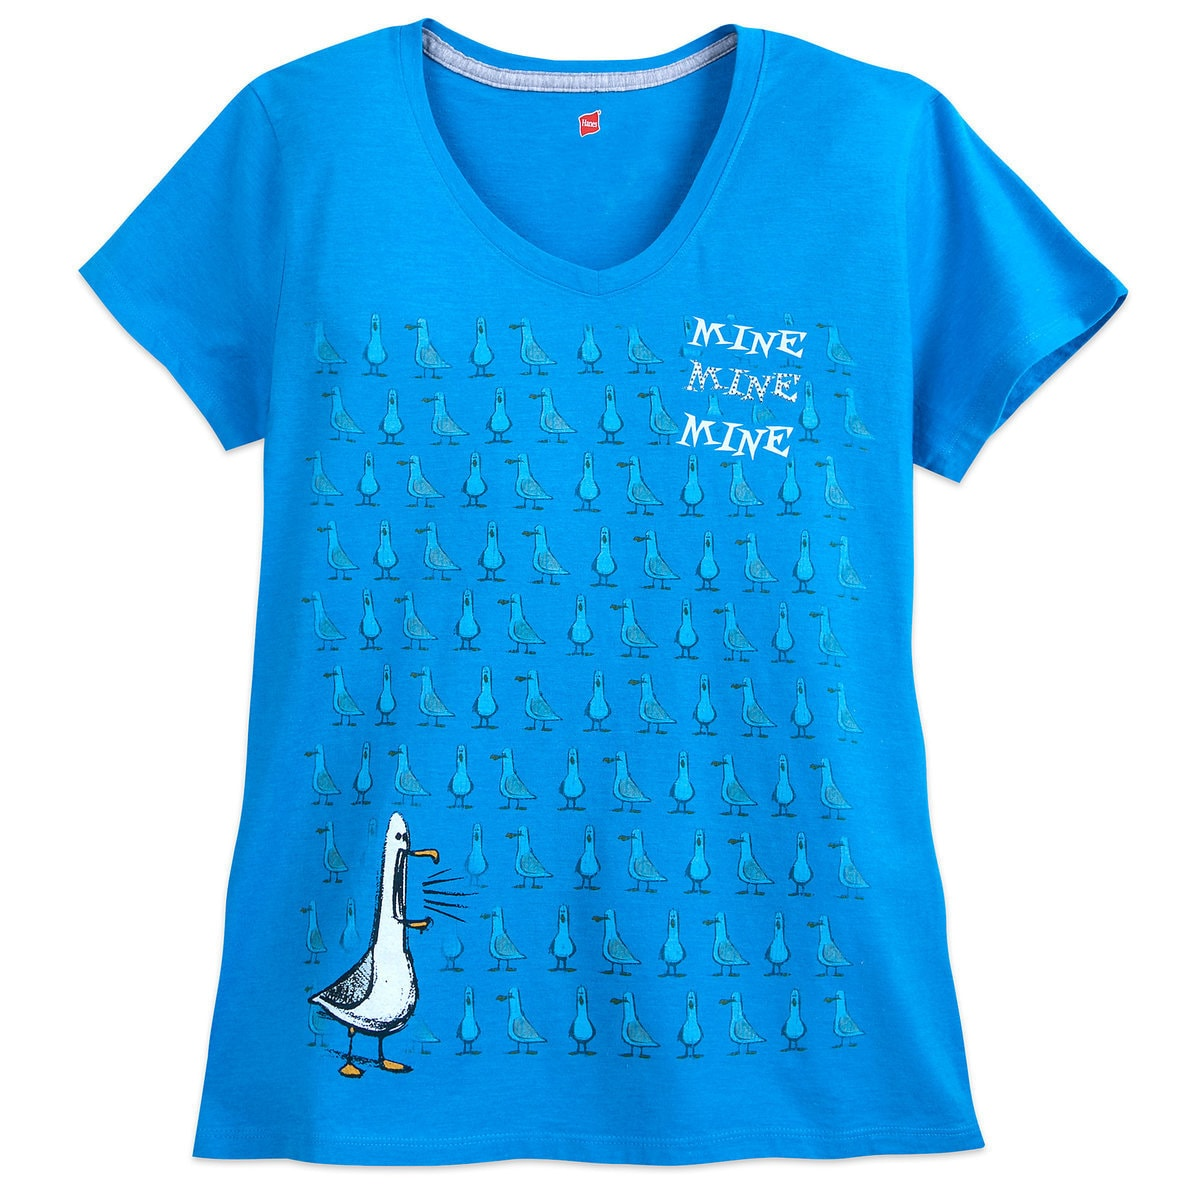 8865d102 Finding Nemo Seagulls ''Mine Mine Mine'' T-Shirt for Women | shopDisney